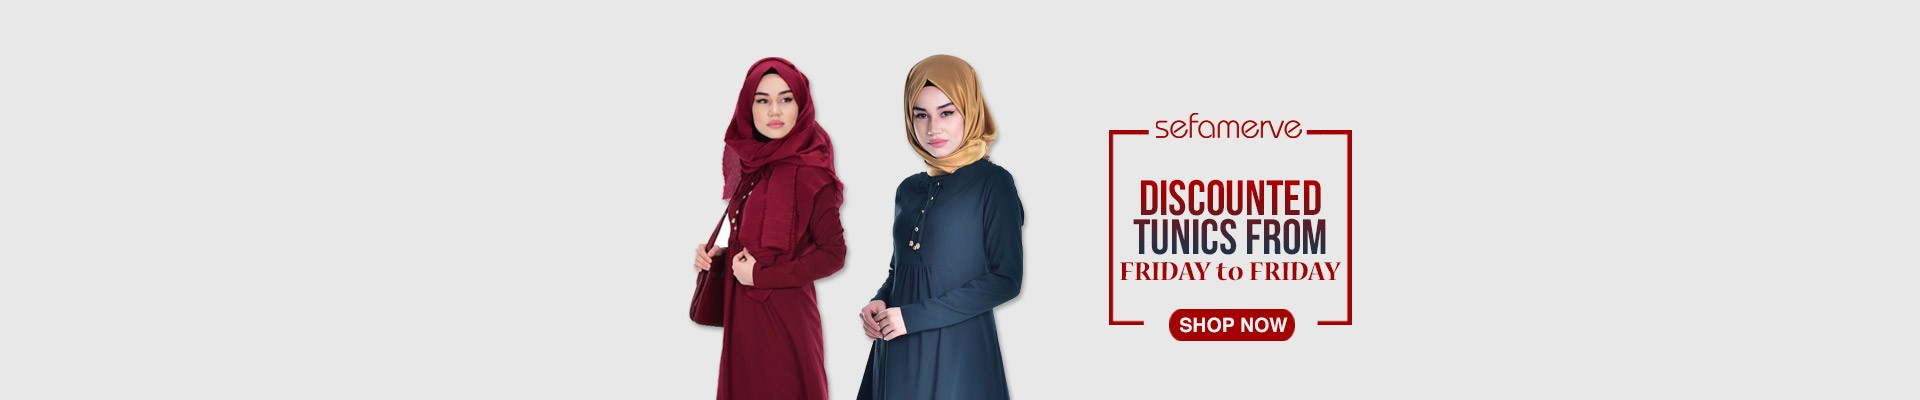 Discounted Tunics from Friday to Friday